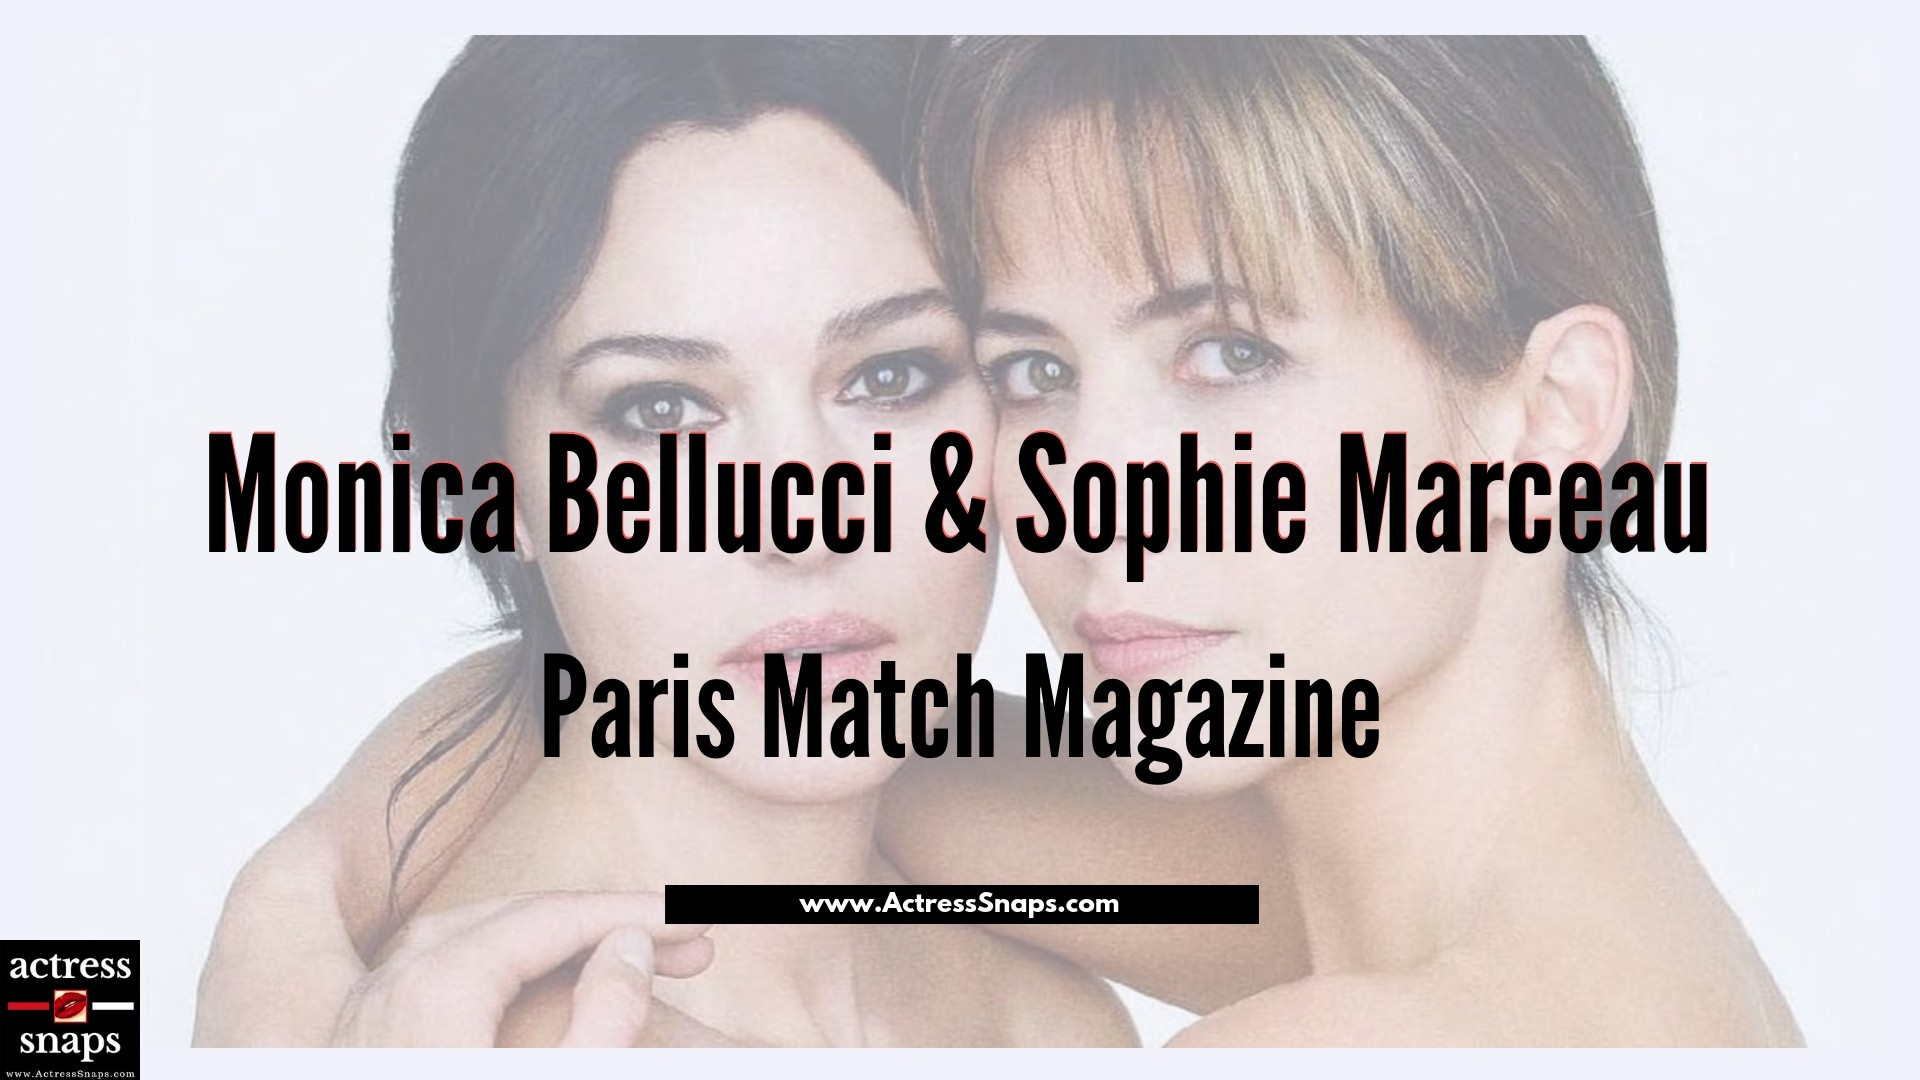 Monica Bellucci & Sophie Marceau Magazine Scans - Sexy Actress Pictures | Hot Actress Pictures - ActressSnaps.com